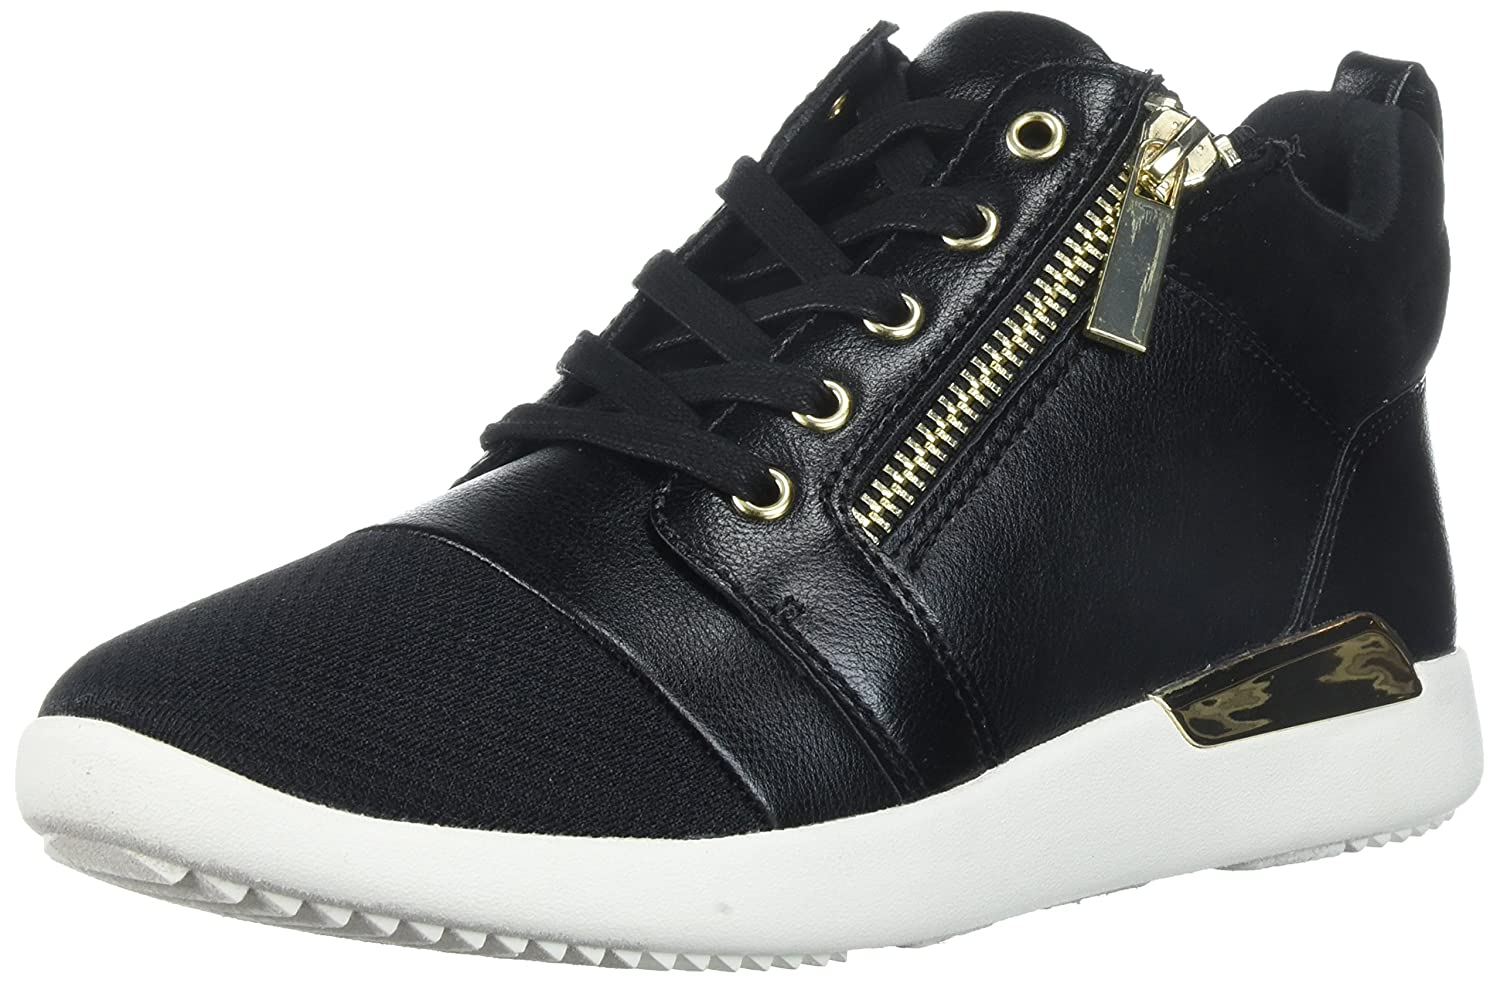 ALDO Women's Naven Fashion Sneaker B072F8YVZW 5 B(M) US|Black Synthetic